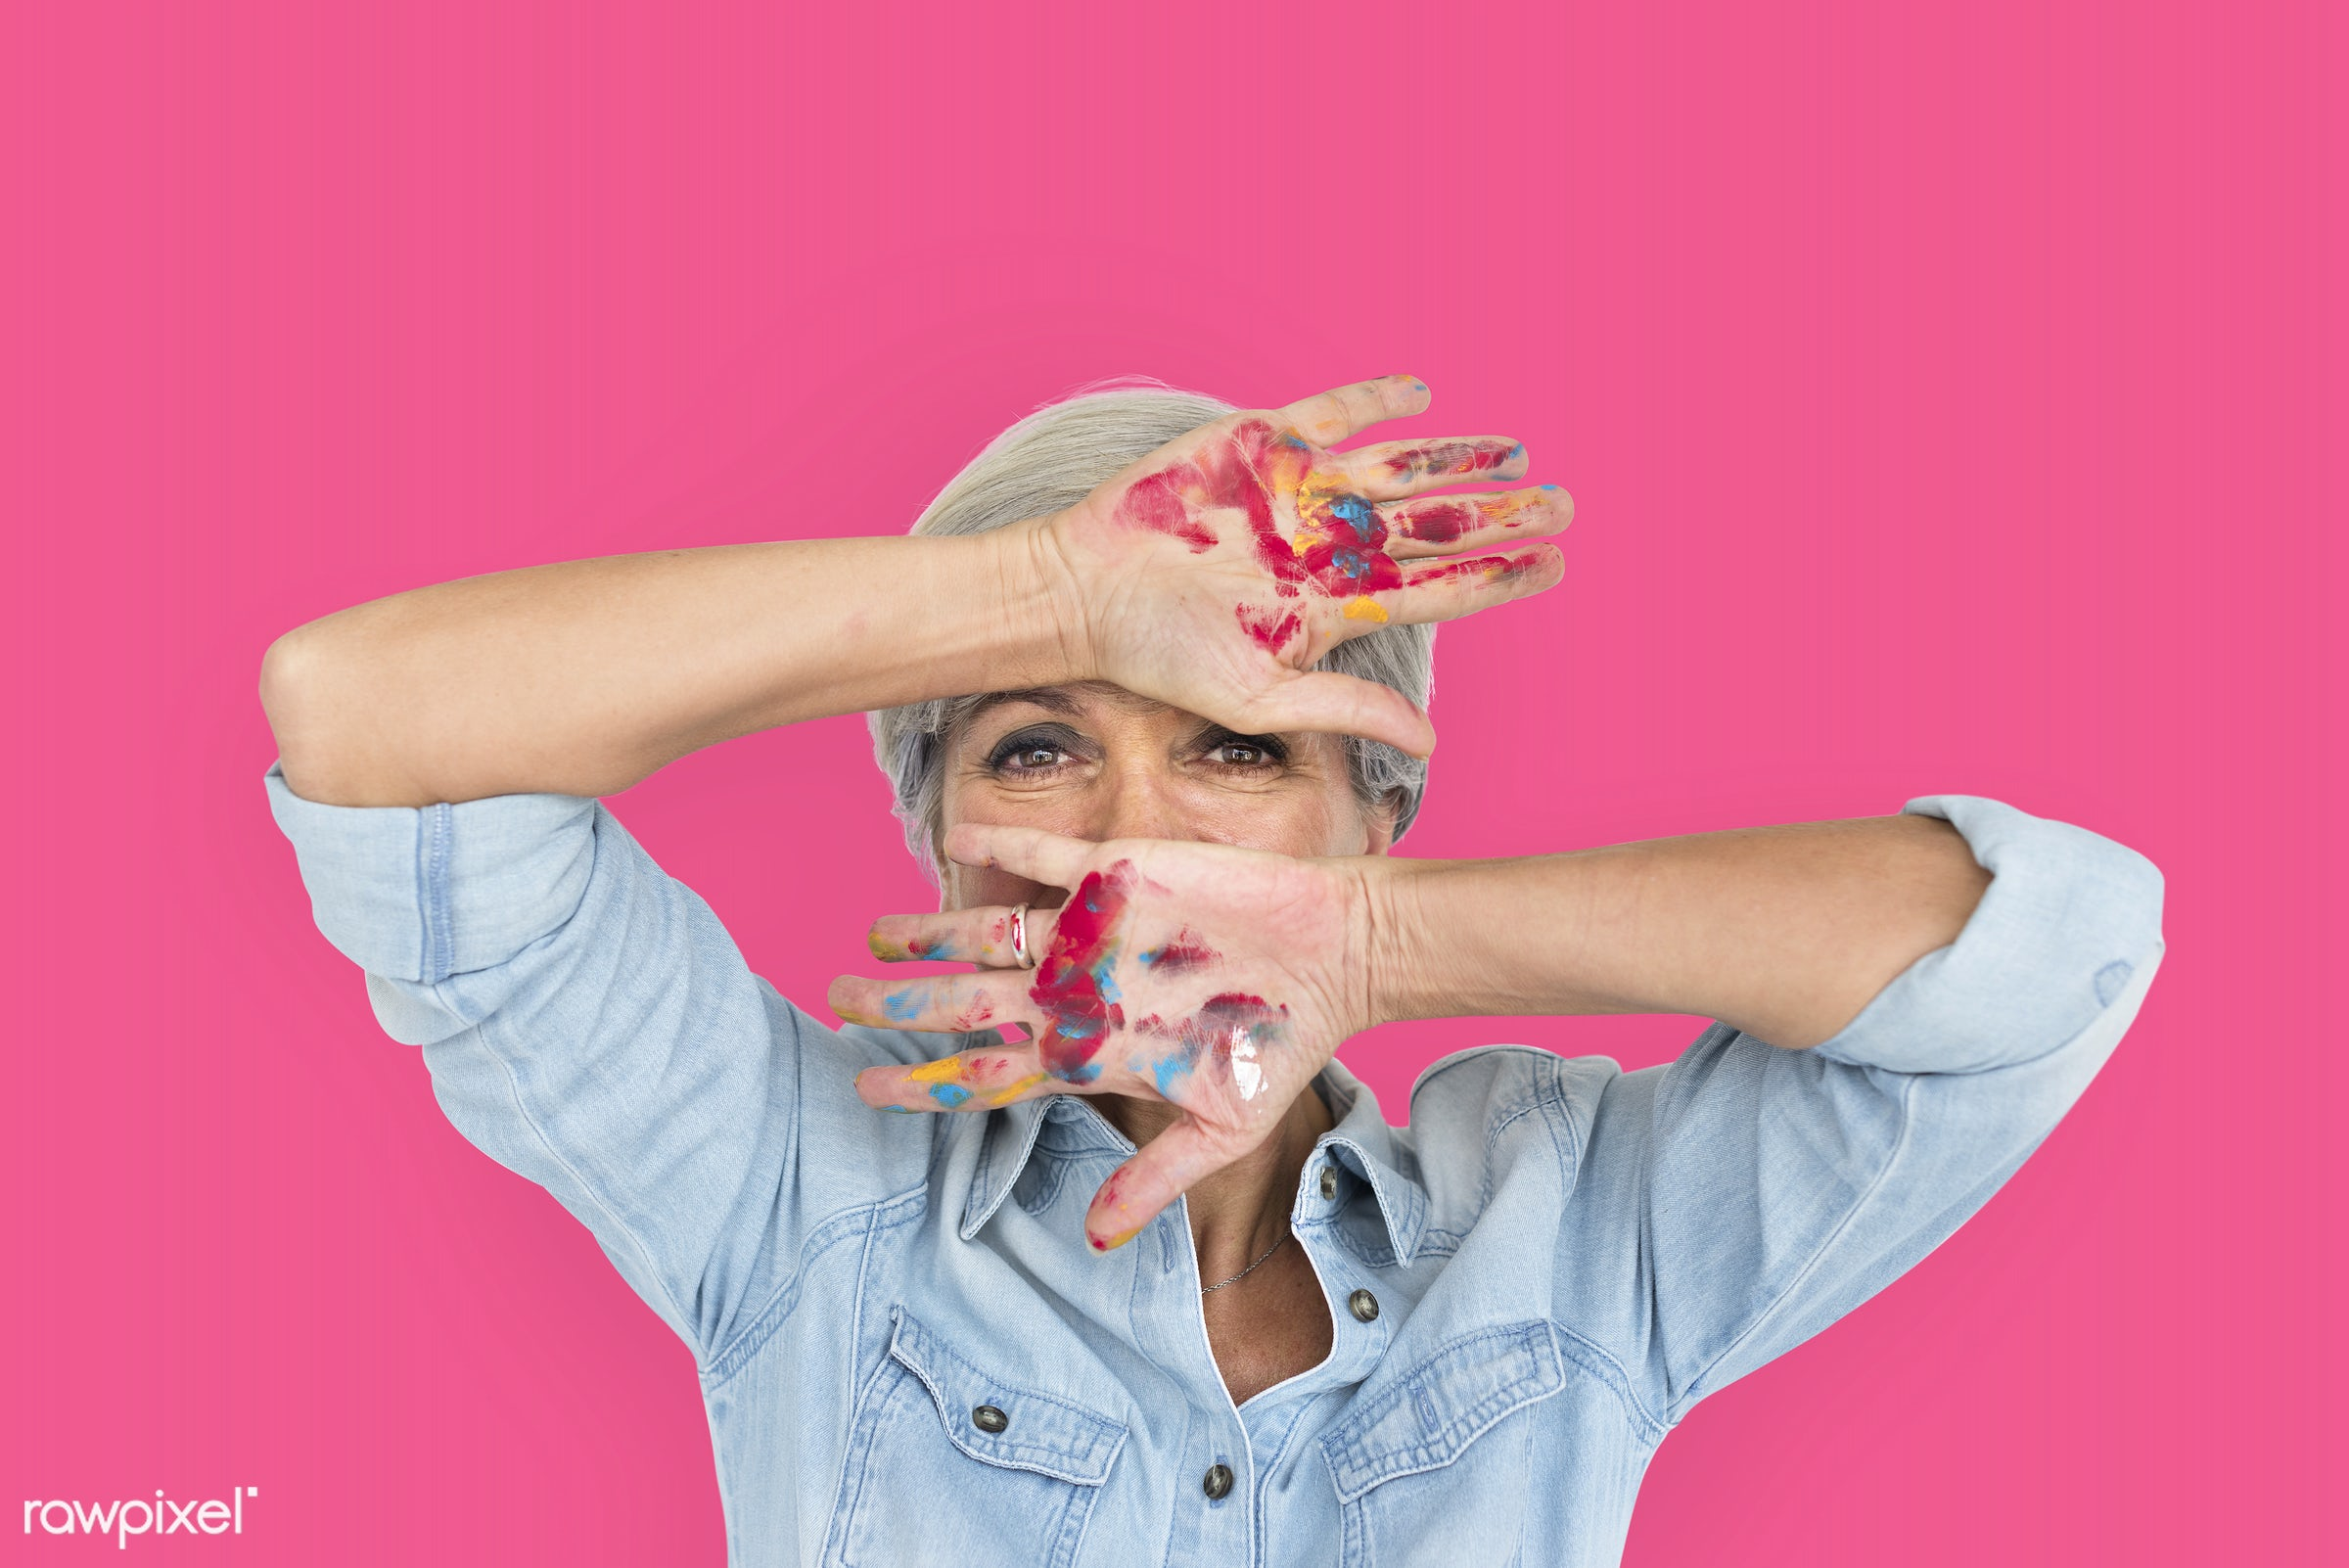 studio, expression, face, person, arts, cover mouth, beauty, cute, pretty, people, style, woman, casual, pink, isolated,...